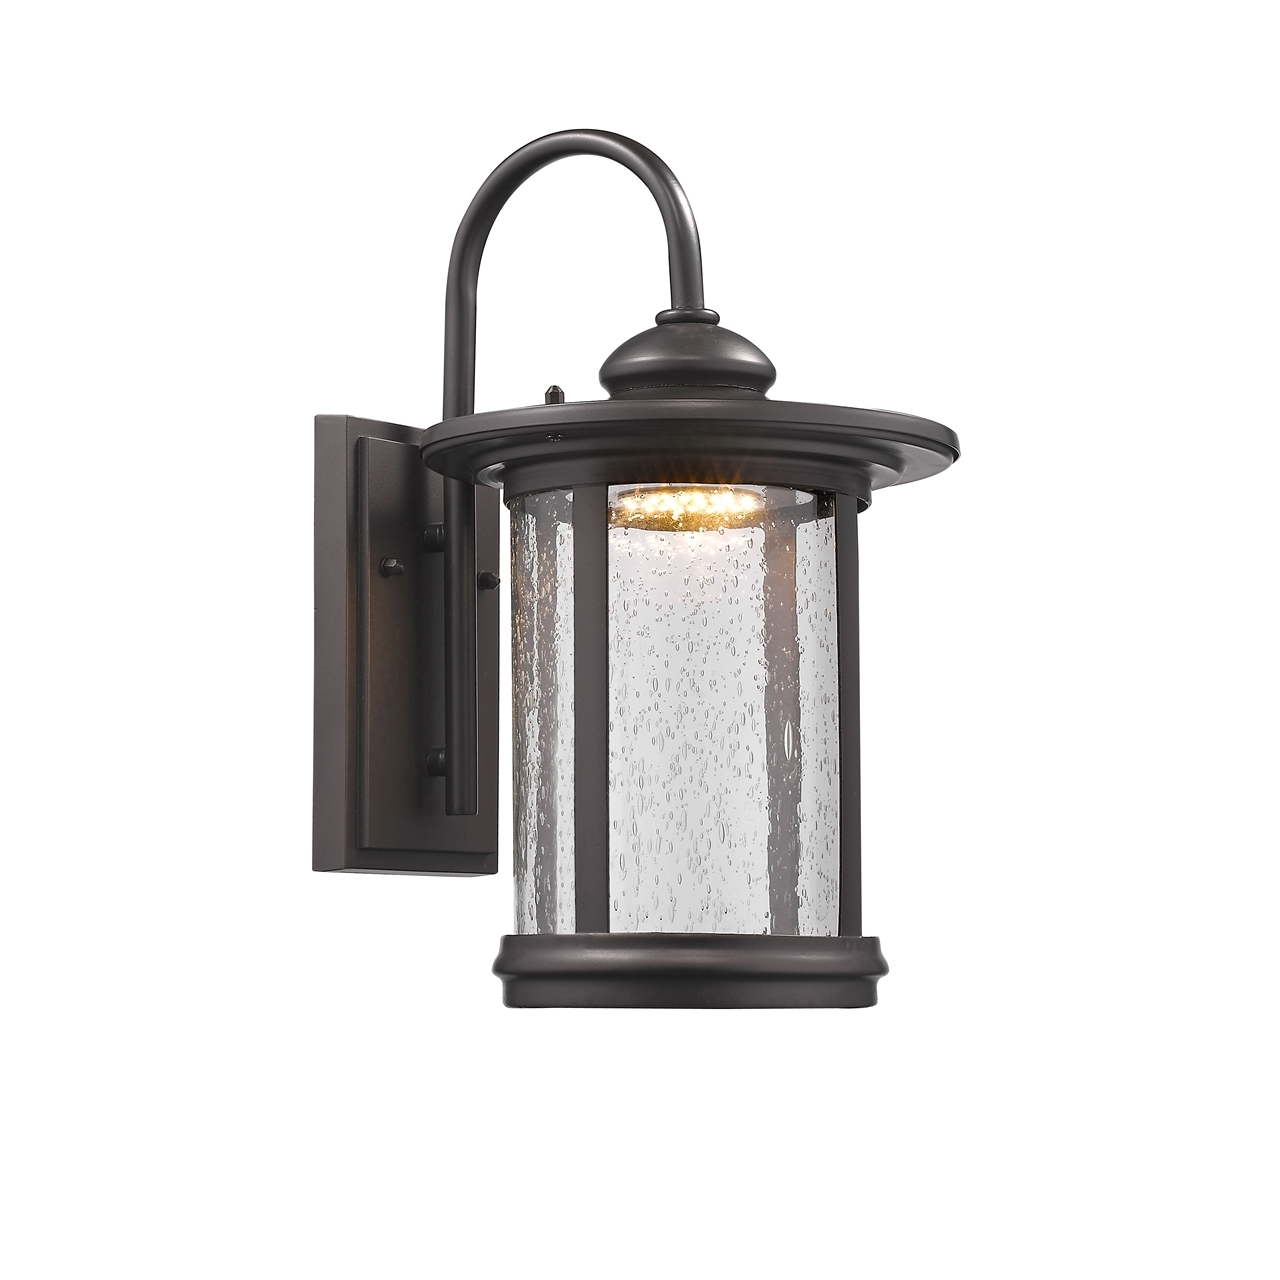 Exterior Wall Sconce Mounting Height : CHLOE Lighting, Inc Lighting wholesale, Lighting wholesalers, Tiffany Lamp, Tiffany Lamps ...